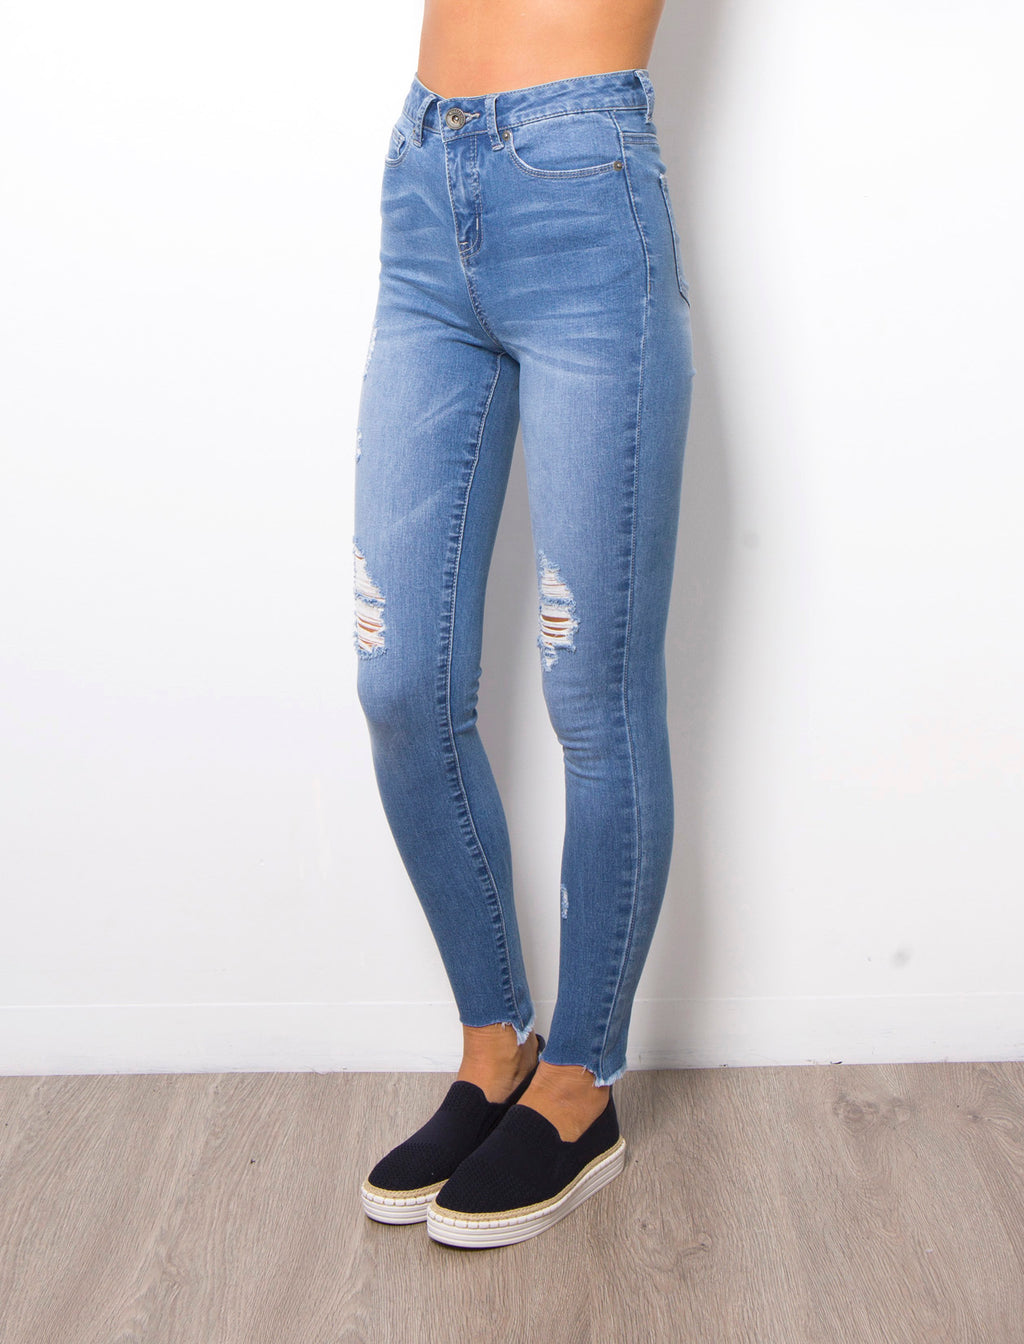 KIM HIGH RISE JEAN - Blue wash